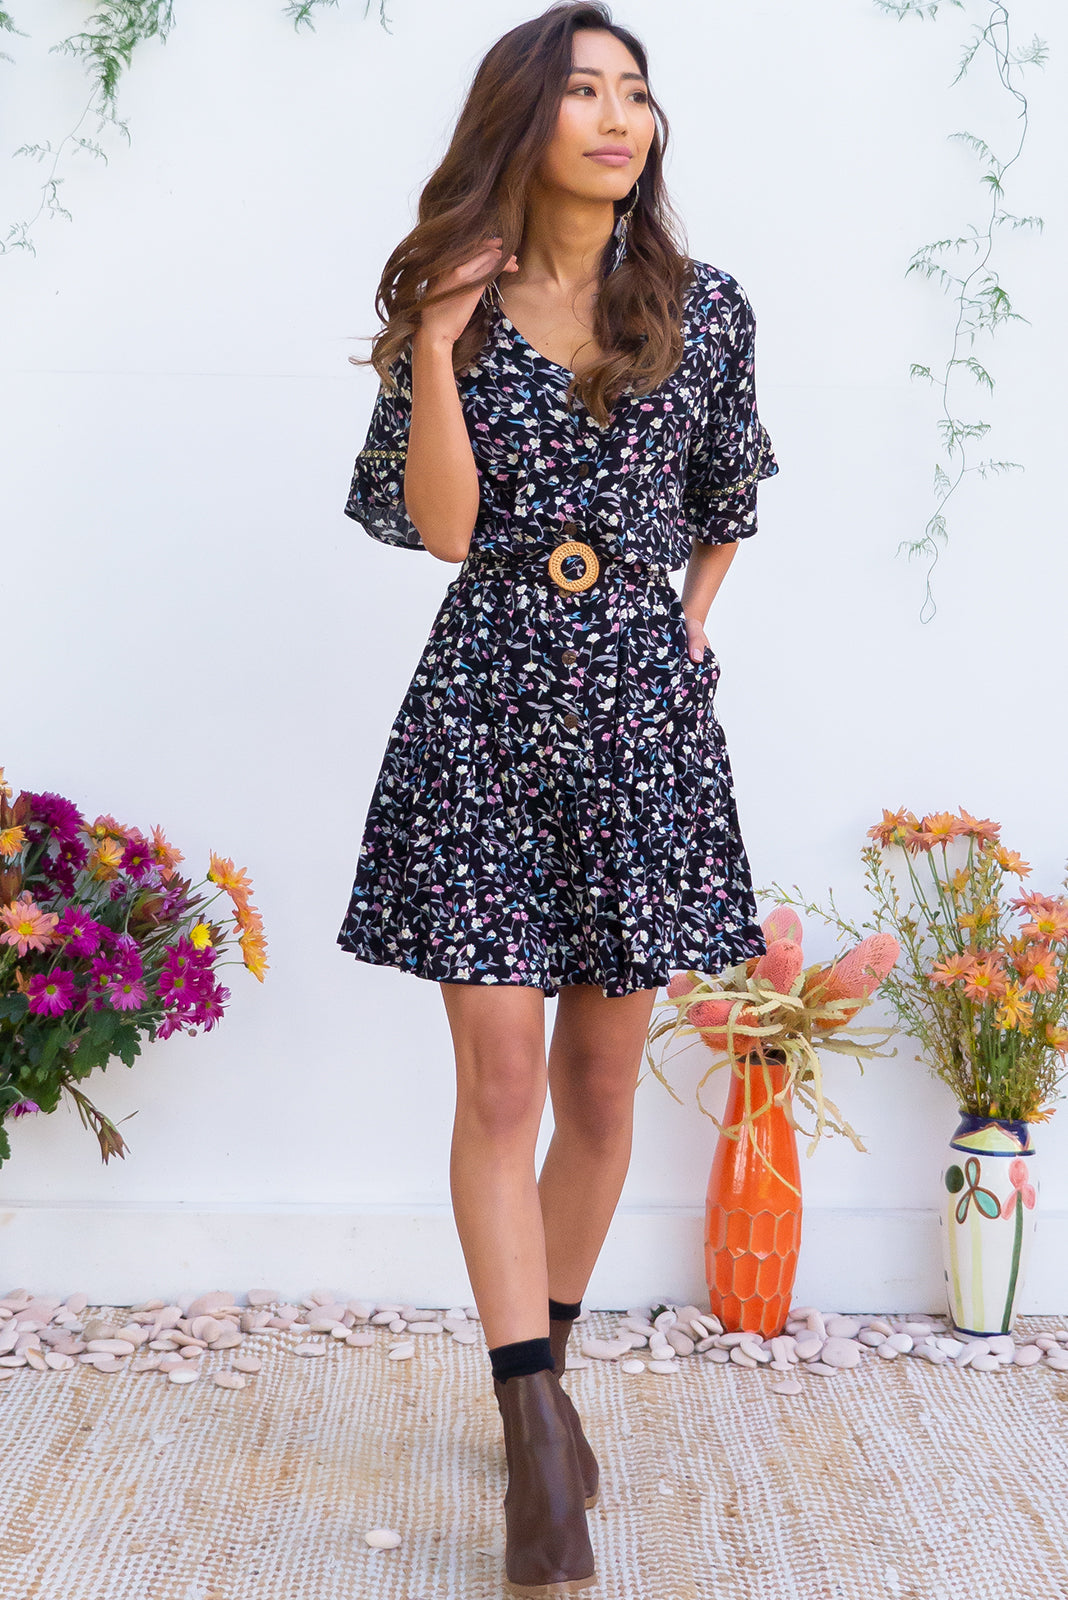 Lucy Onyx Flowers Dress features a frilled drop waist, button front, soft frill sleeves and a feature rattan buck belt the fabric is a soft crinkle textured woven 100% rayon in a true black ditzy floral print